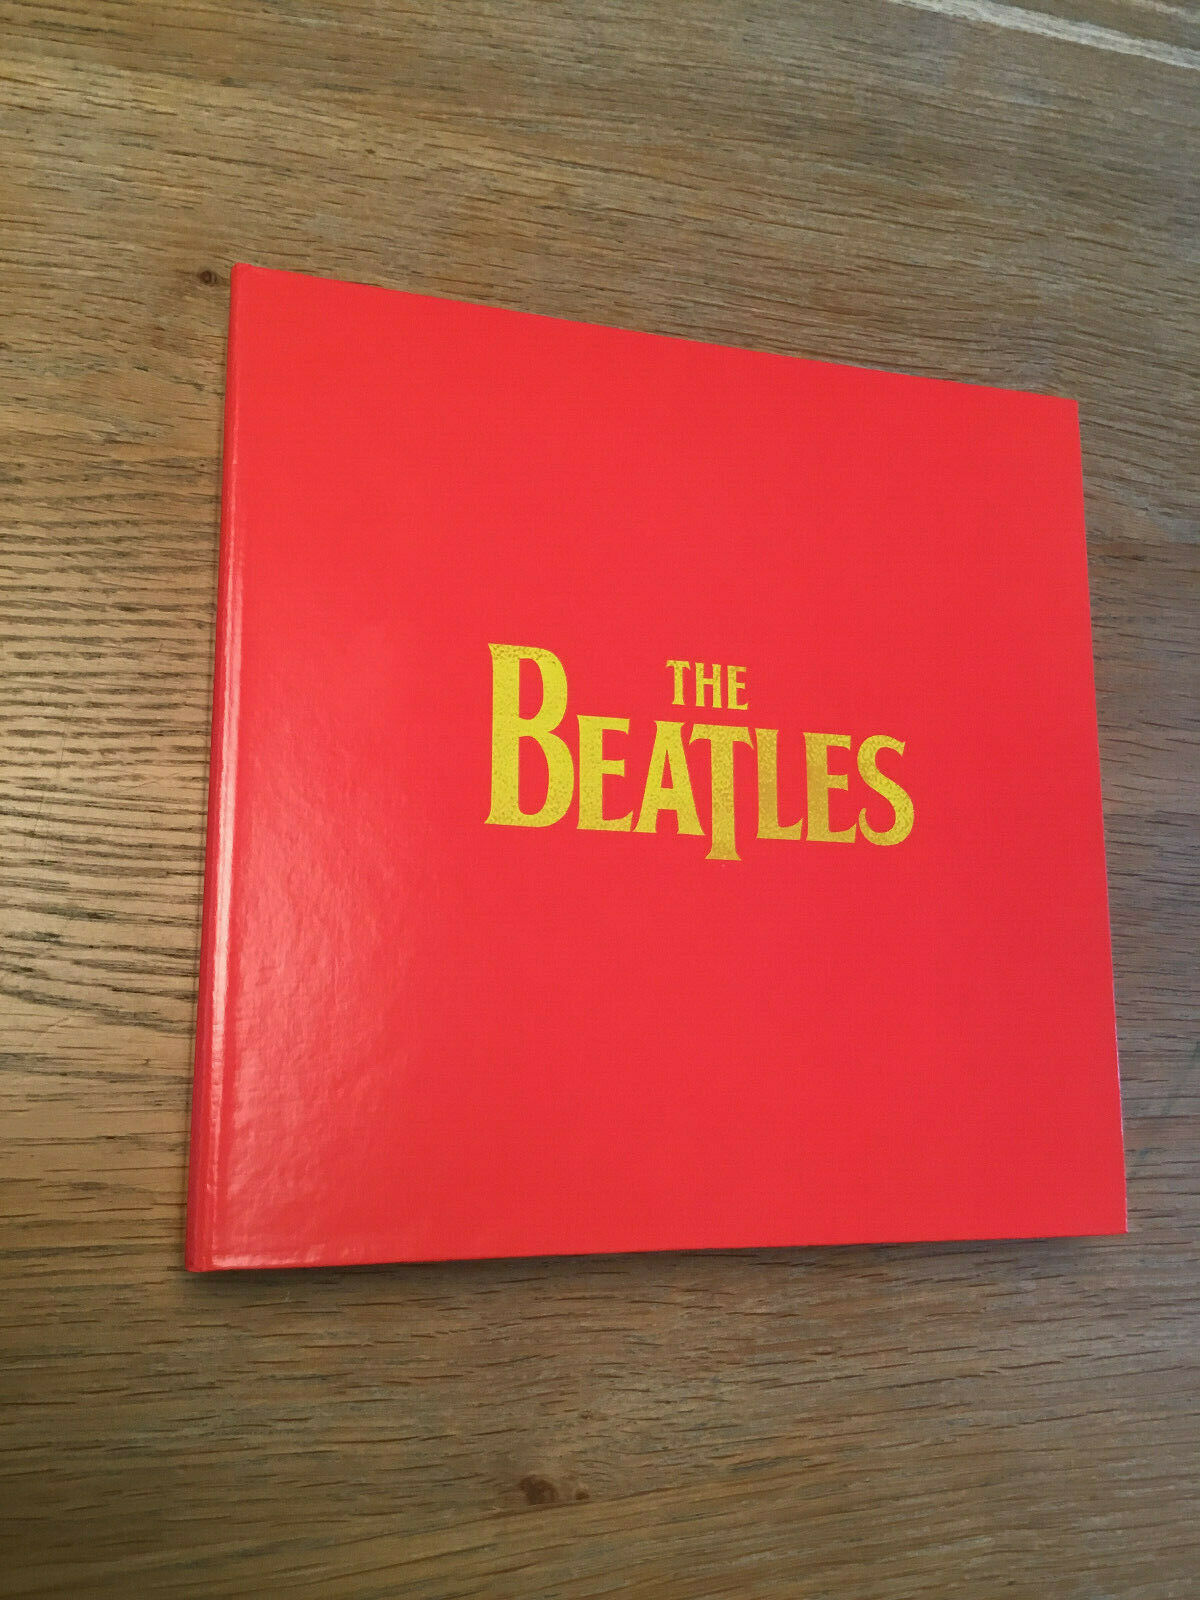 The Beatles Single Collection RSD 2012 Cartney Lennon rar Harrisson Stones Who S